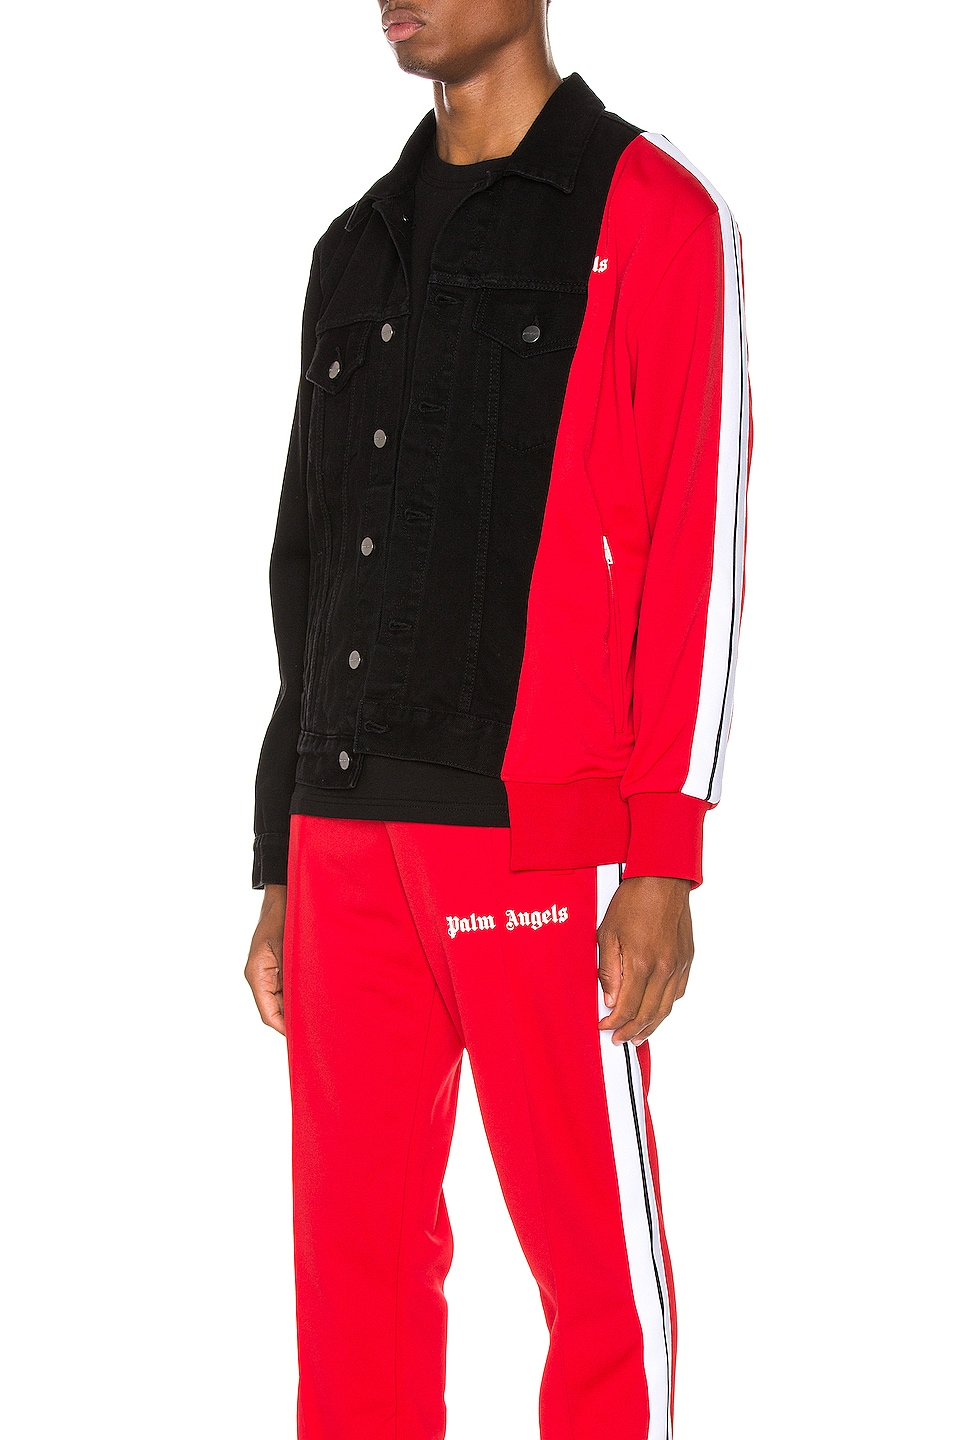 Image 4 of Palm Angels Bold Track Trucker Jacket in Black & Red